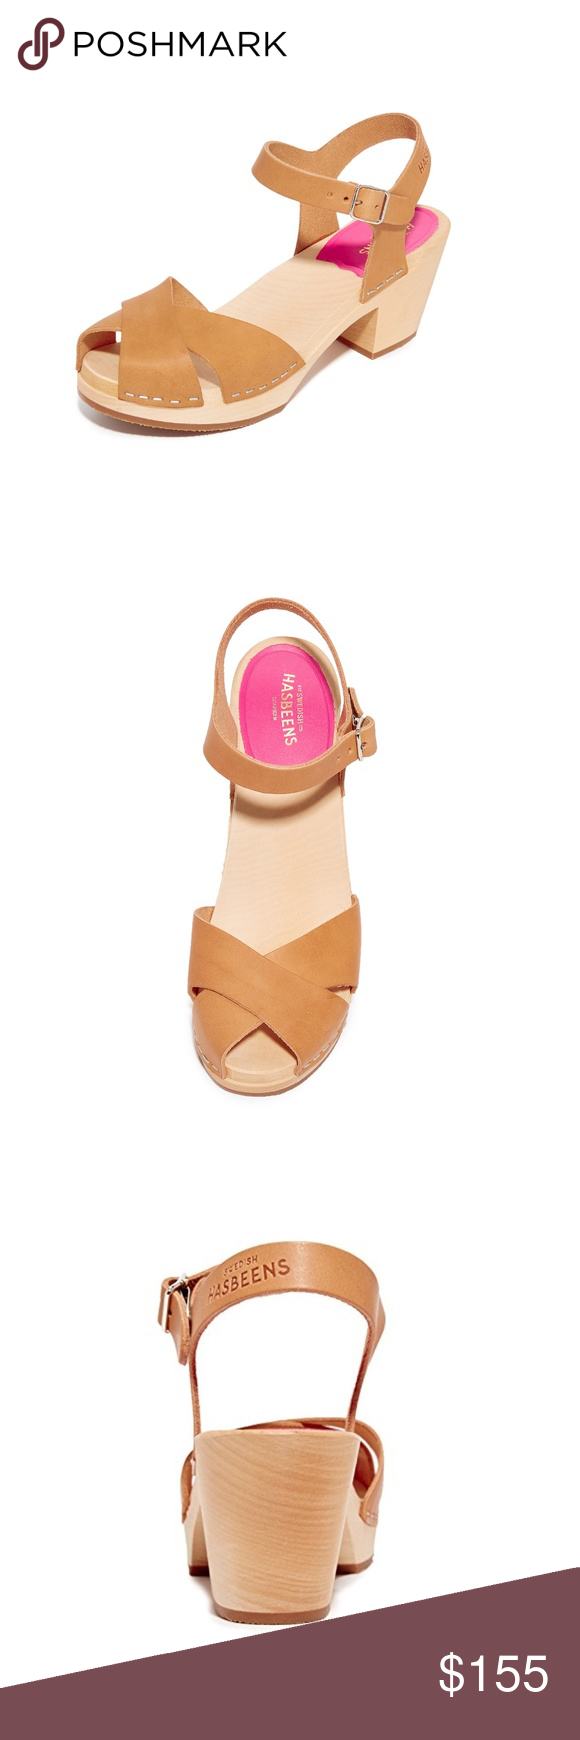 f9c65e853a7f52 Swedish Hasbeens Mirja Clog Sandal  70s-inspired clogs featuring a natural  grain leather that